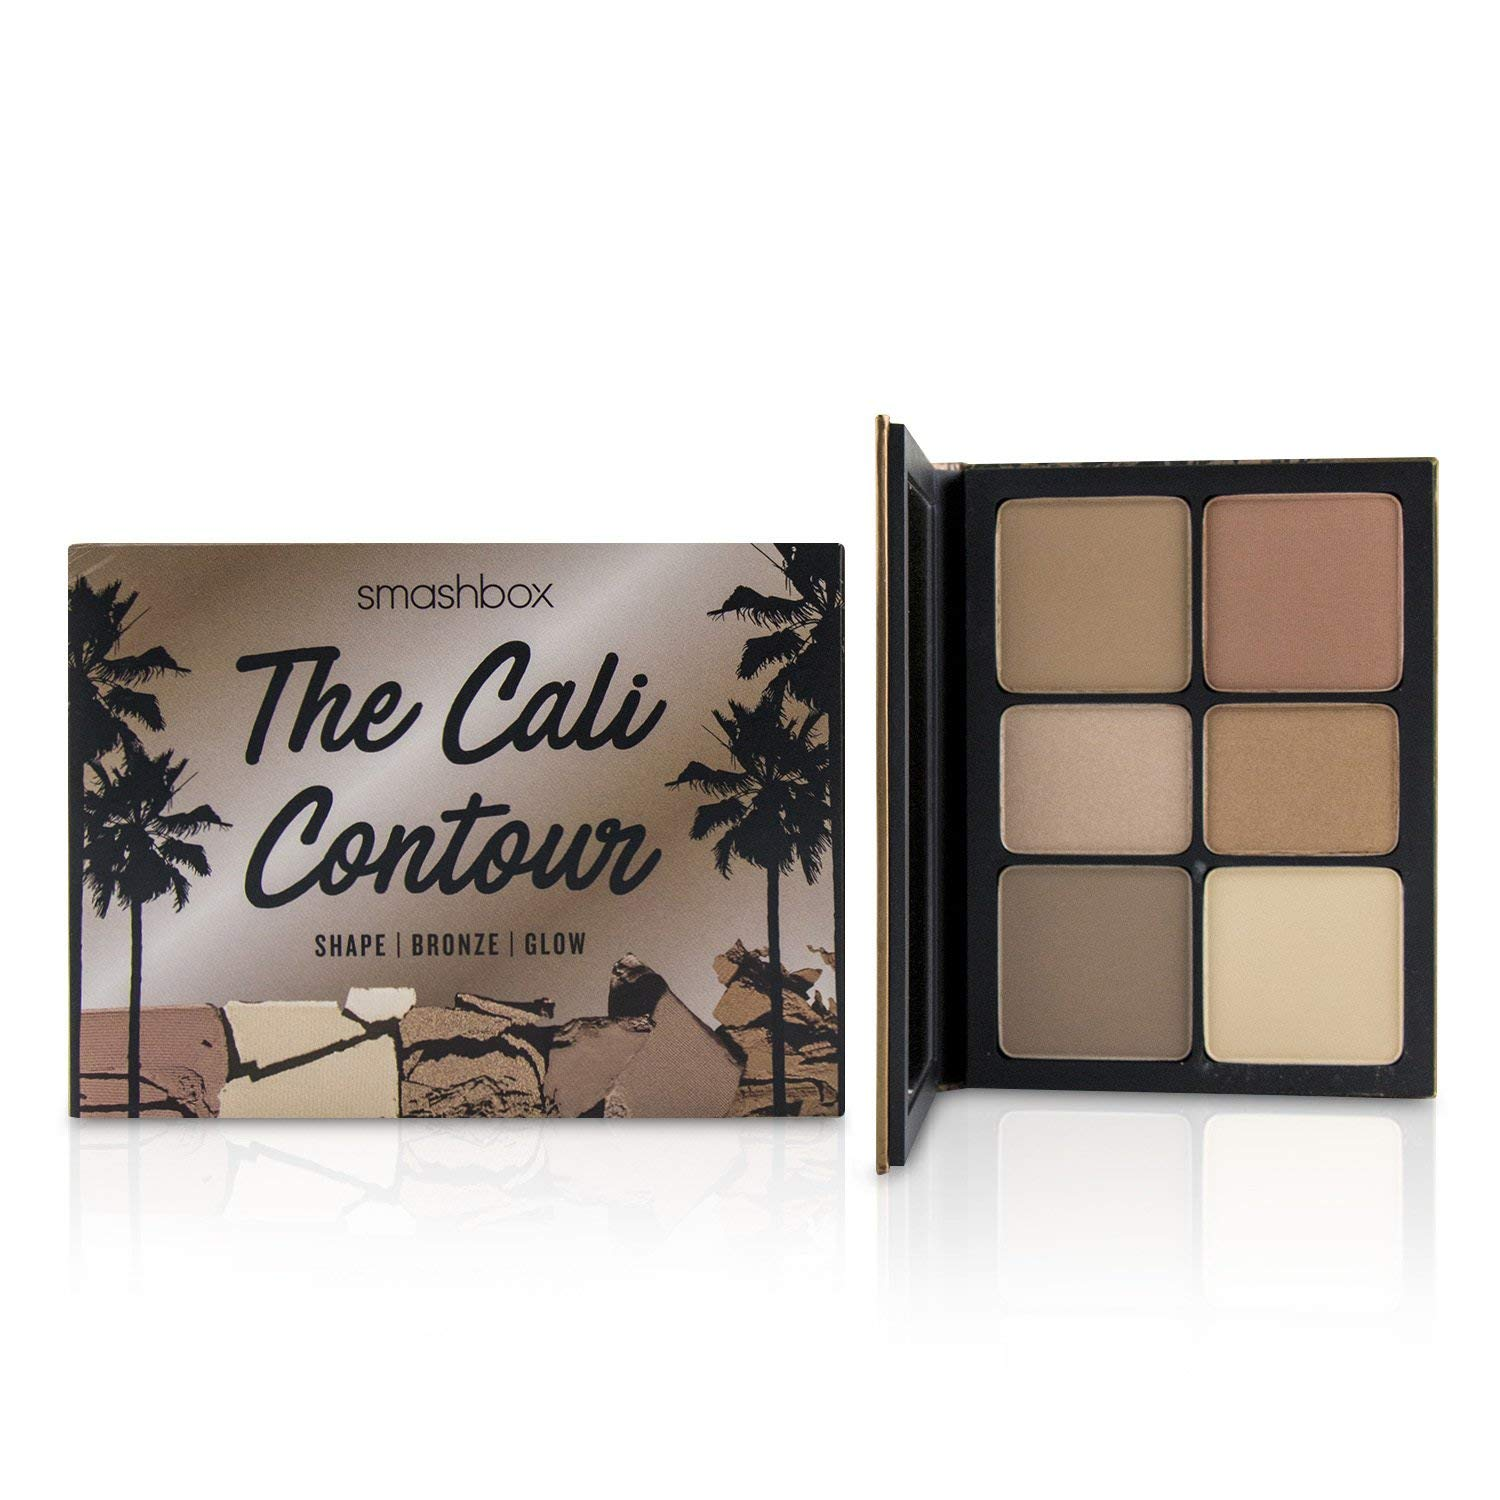 Amazon.com : Smashbox The Cali Contour (Shape/Bronze/Glow) Pallet ...